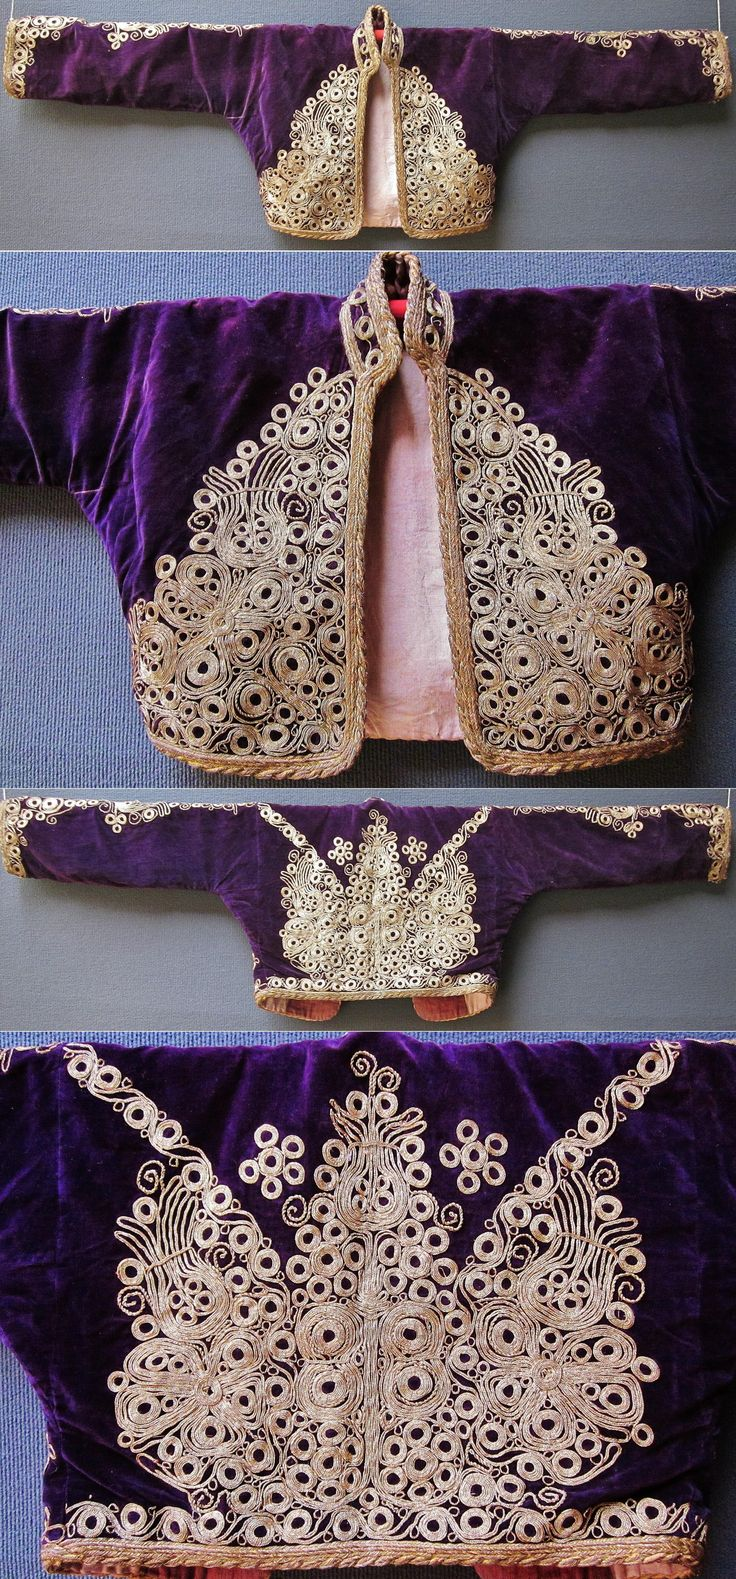 Embroidered women's 'cepken' (long-sleeved vest) from Balıkesir (central district). Part of a festive costume, early 20th century. Golden metal thread on silk velvet; embroidery technique: 'kordon tutturma' (applied cord). (Inv.nr. cep029 - Kavak Costume Collection - Antwerpen/Belgium).